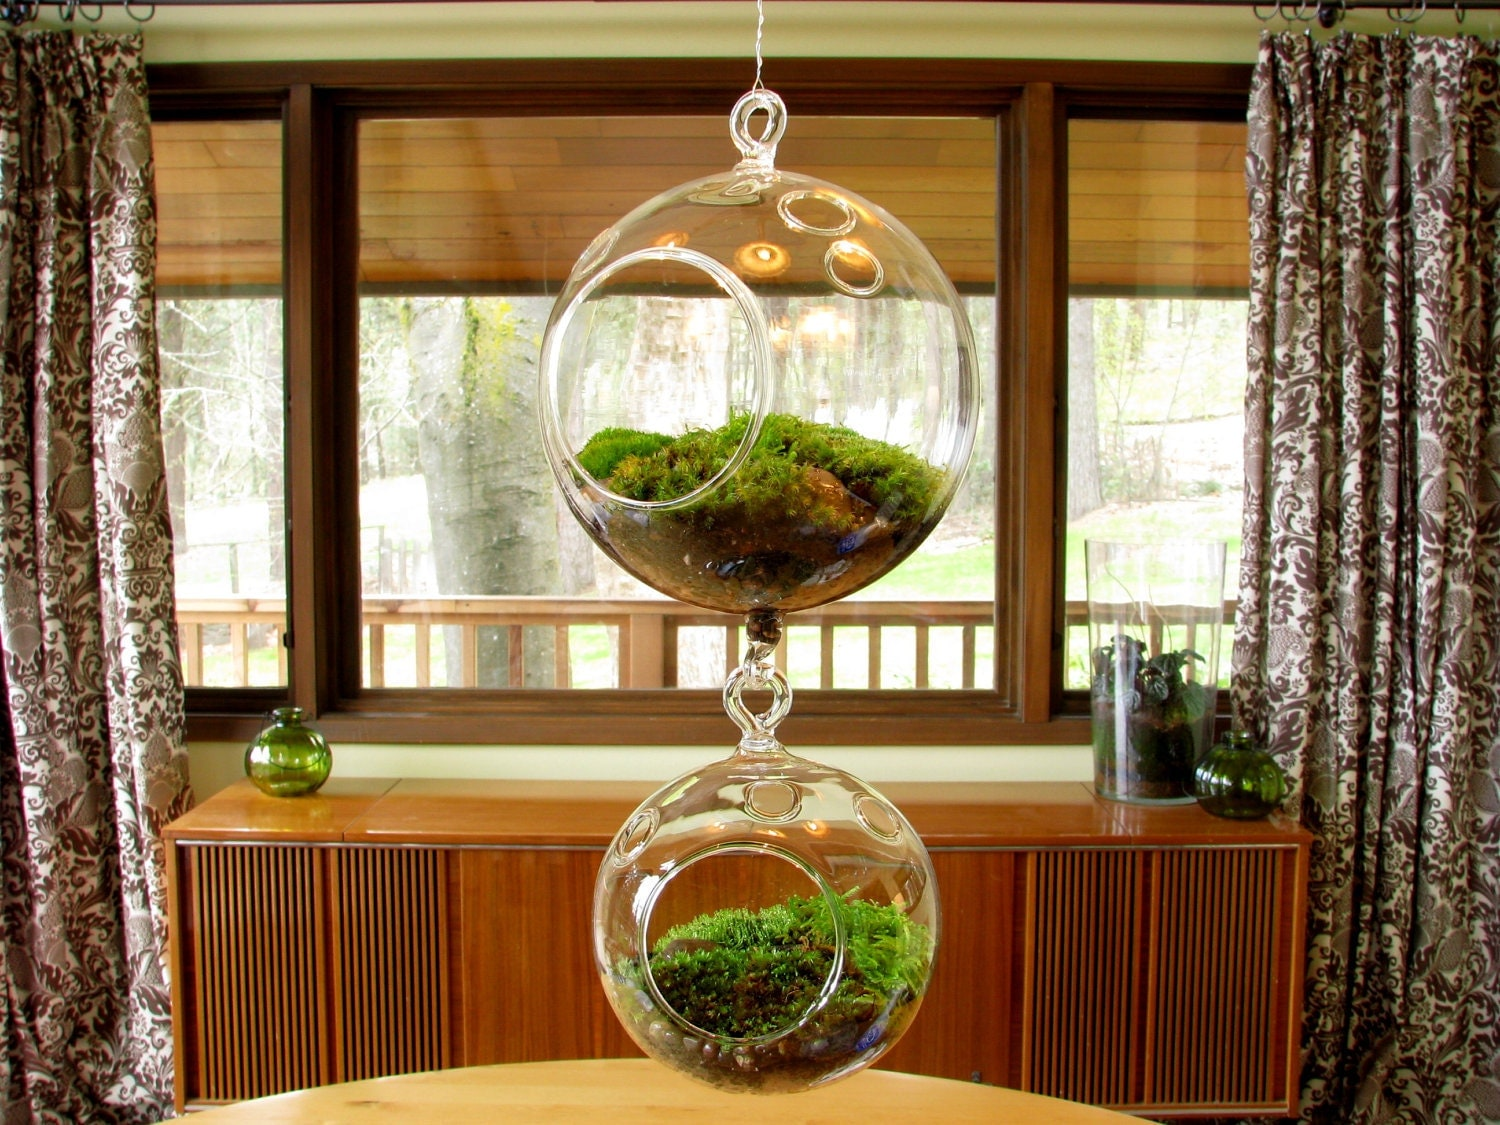 mama baby hanging glass terrariums by tinyterrains on etsy. Black Bedroom Furniture Sets. Home Design Ideas